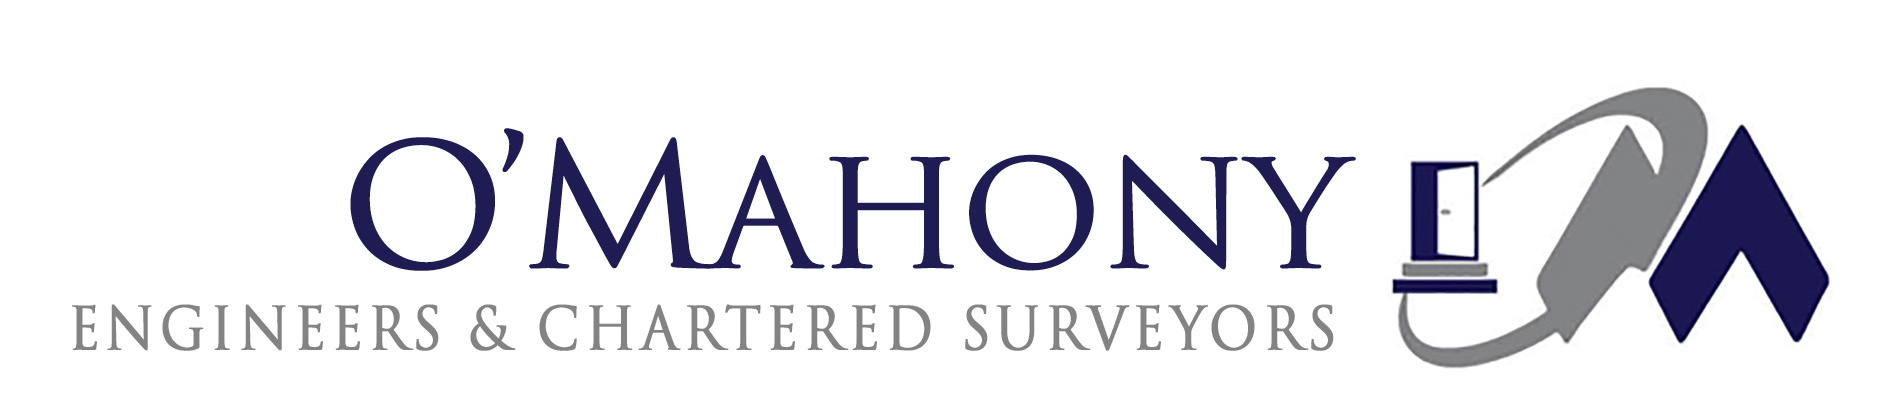 O'Mahony Engineers & Chartered Surveyors